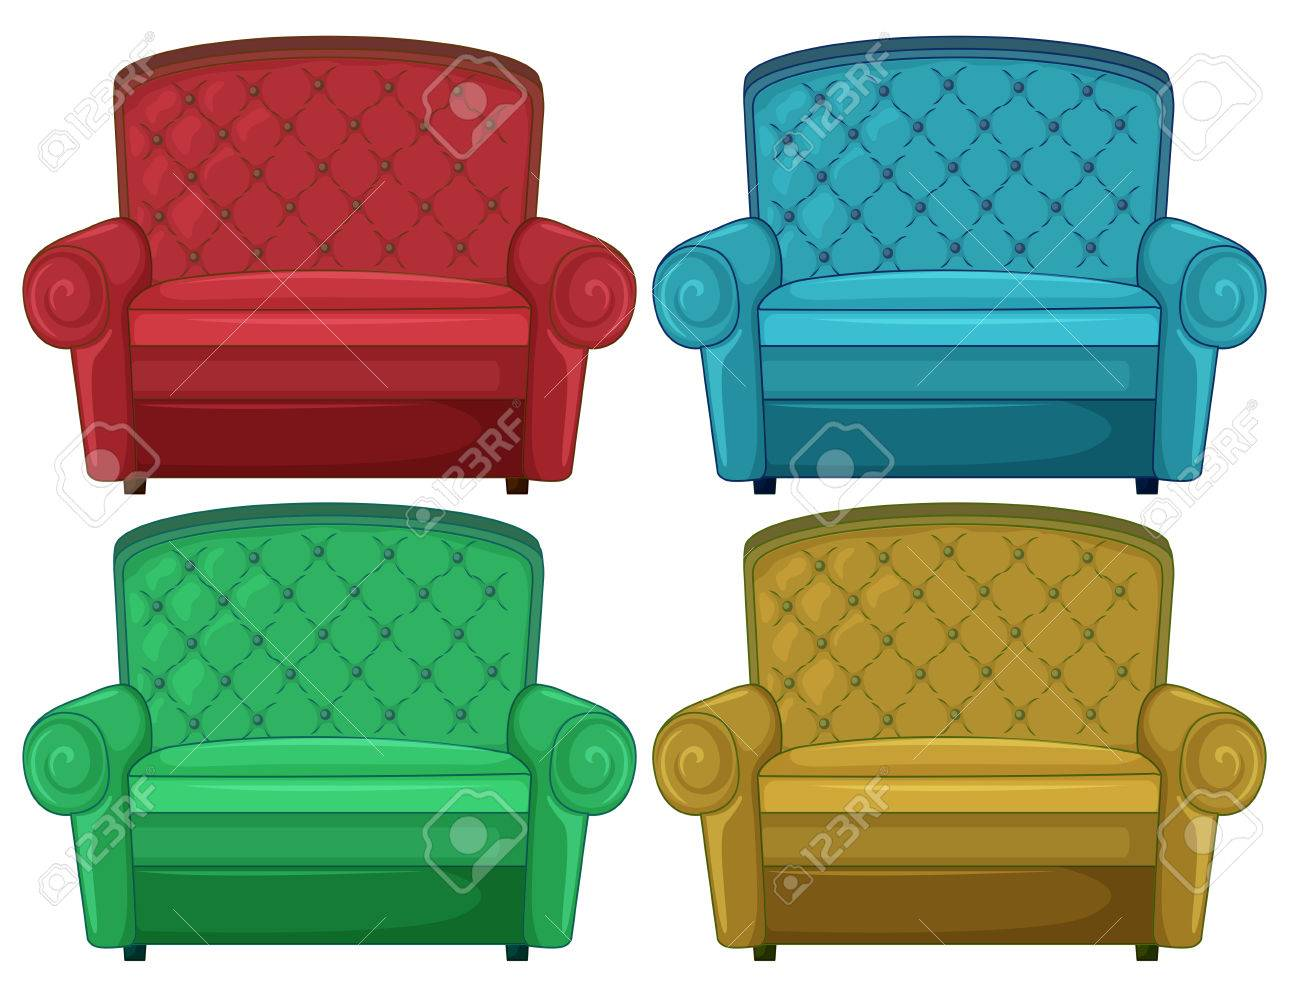 Illustration of the four colorful couches on a white background Stock Vector - 25166023